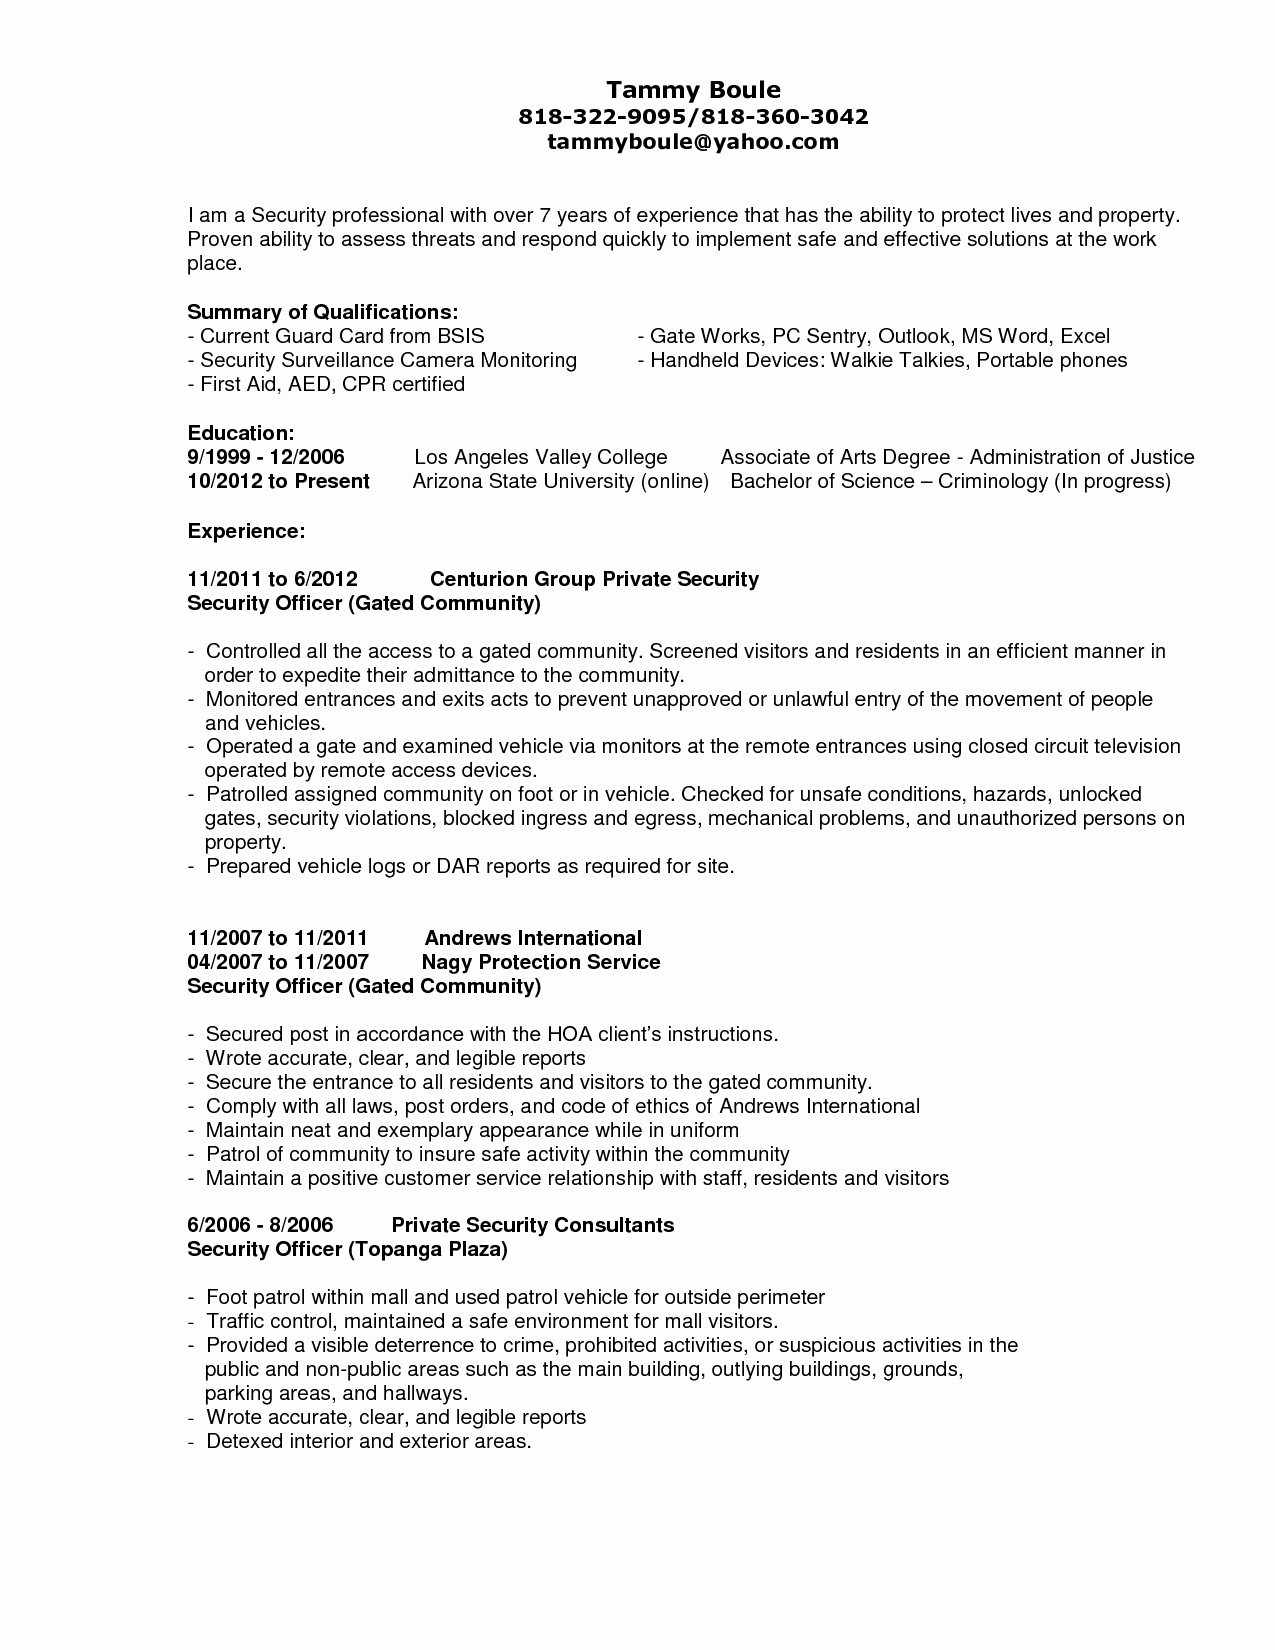 scar how=school administration resume writing service